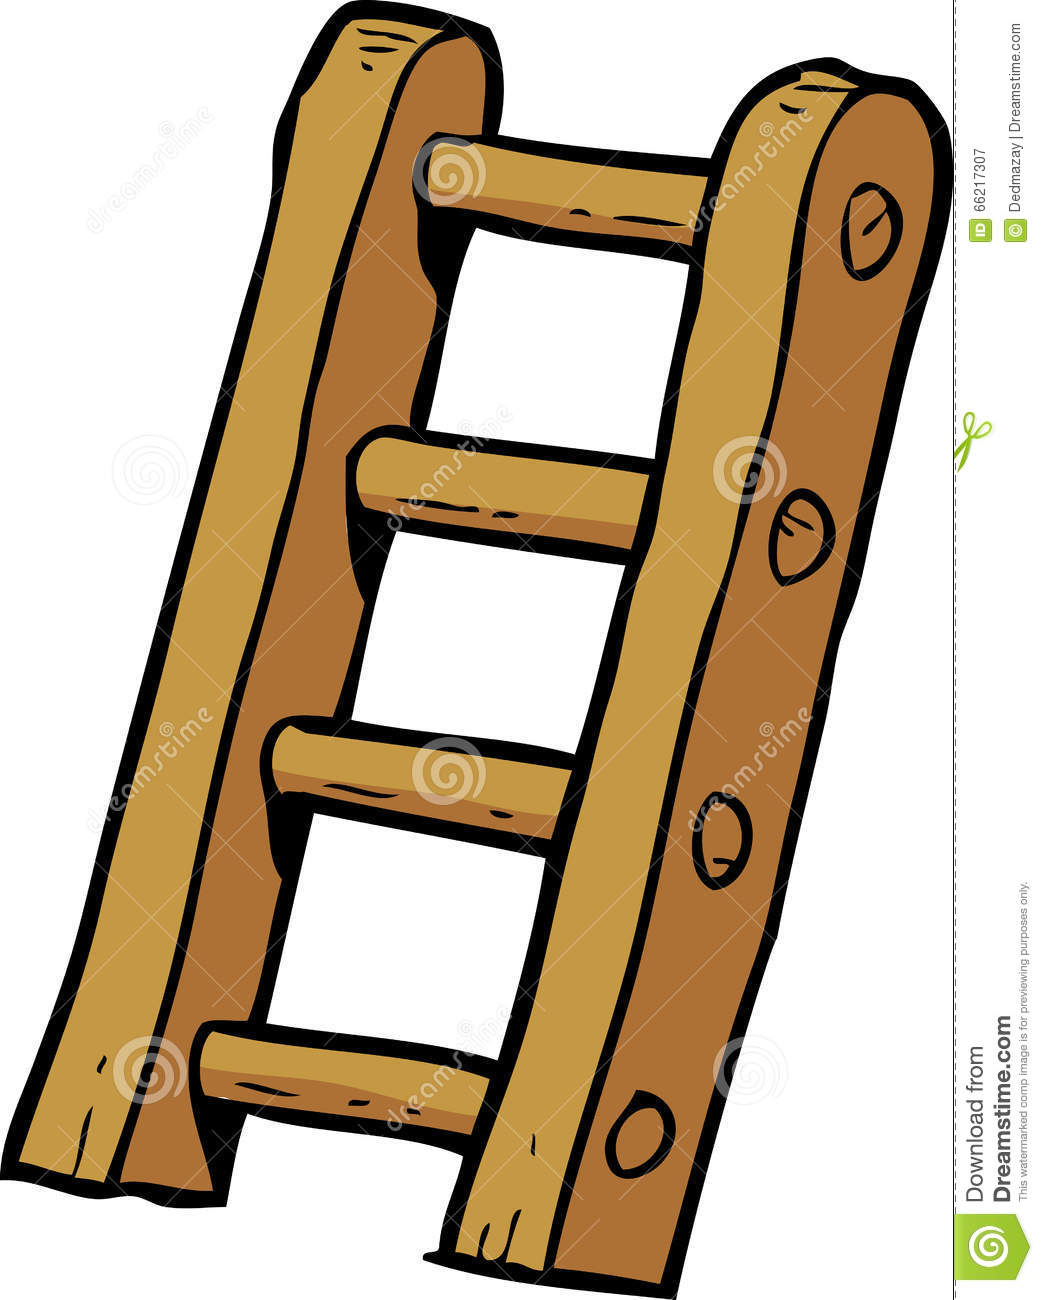 Cartoon Climb Stairs Stock Illustrations 1 100 Cartoon Climb Stairs Stock Illustrations Vectors Clipart Dreamstime